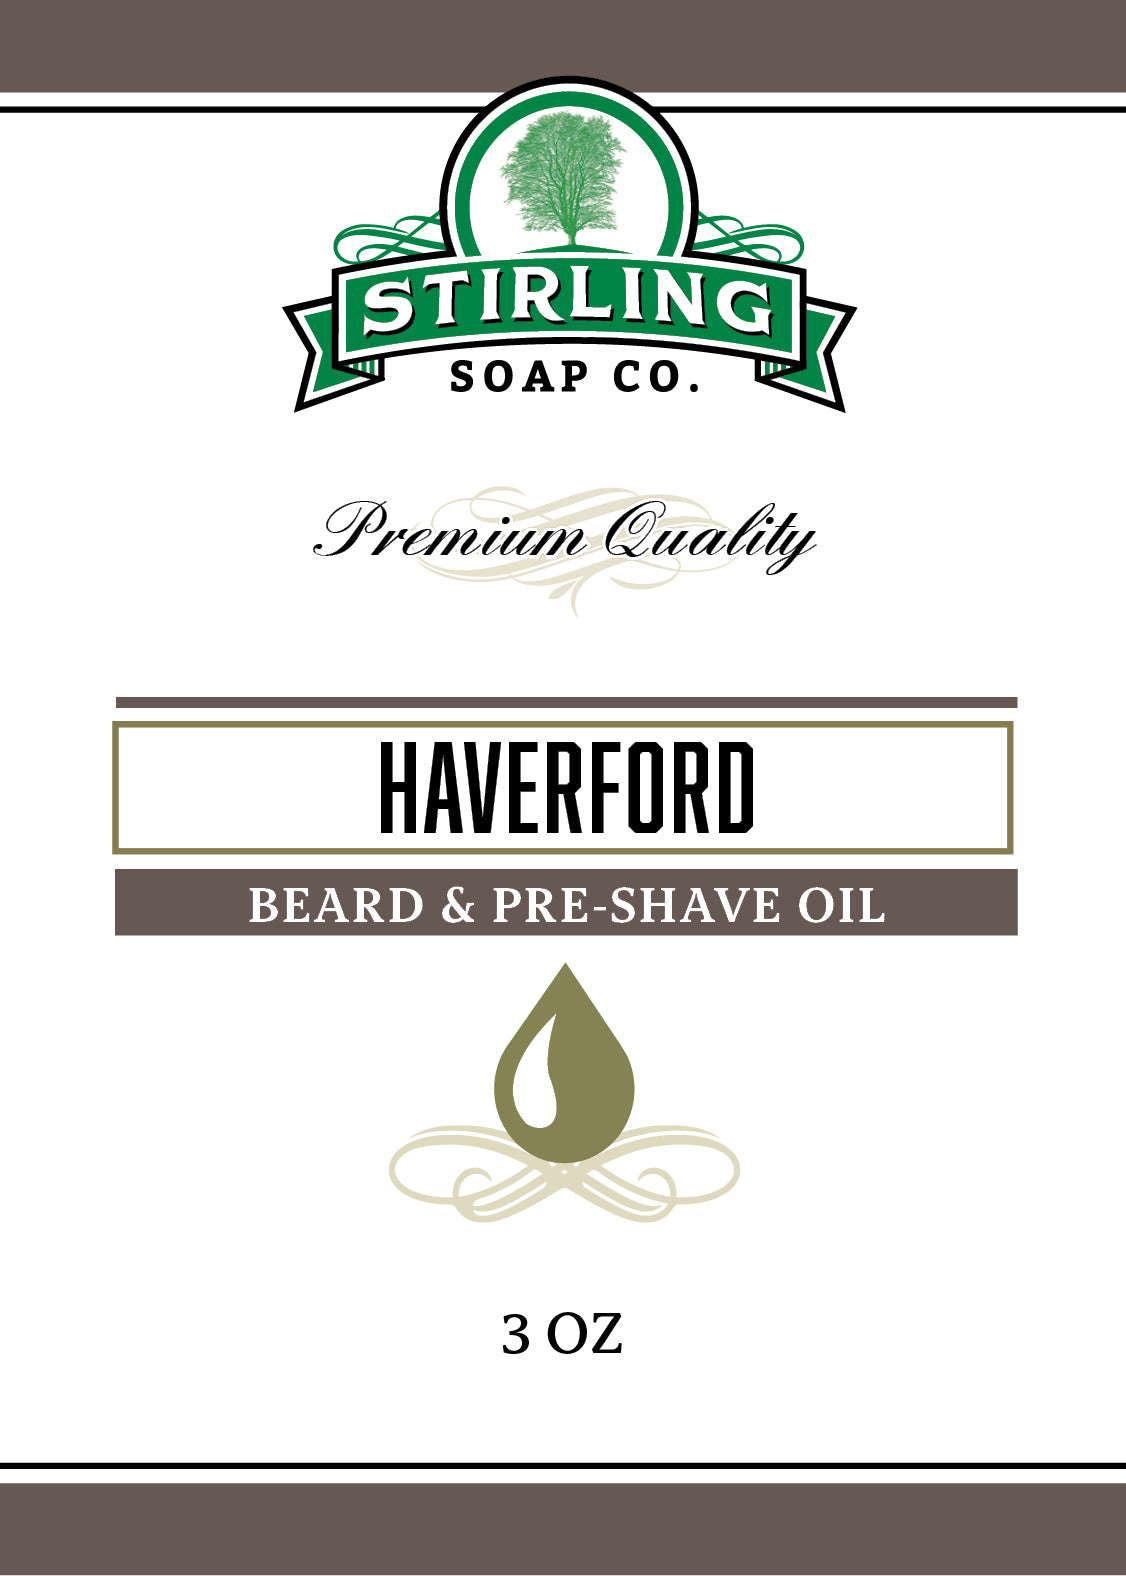 Haverford - Beard & Pre-Shave Oil